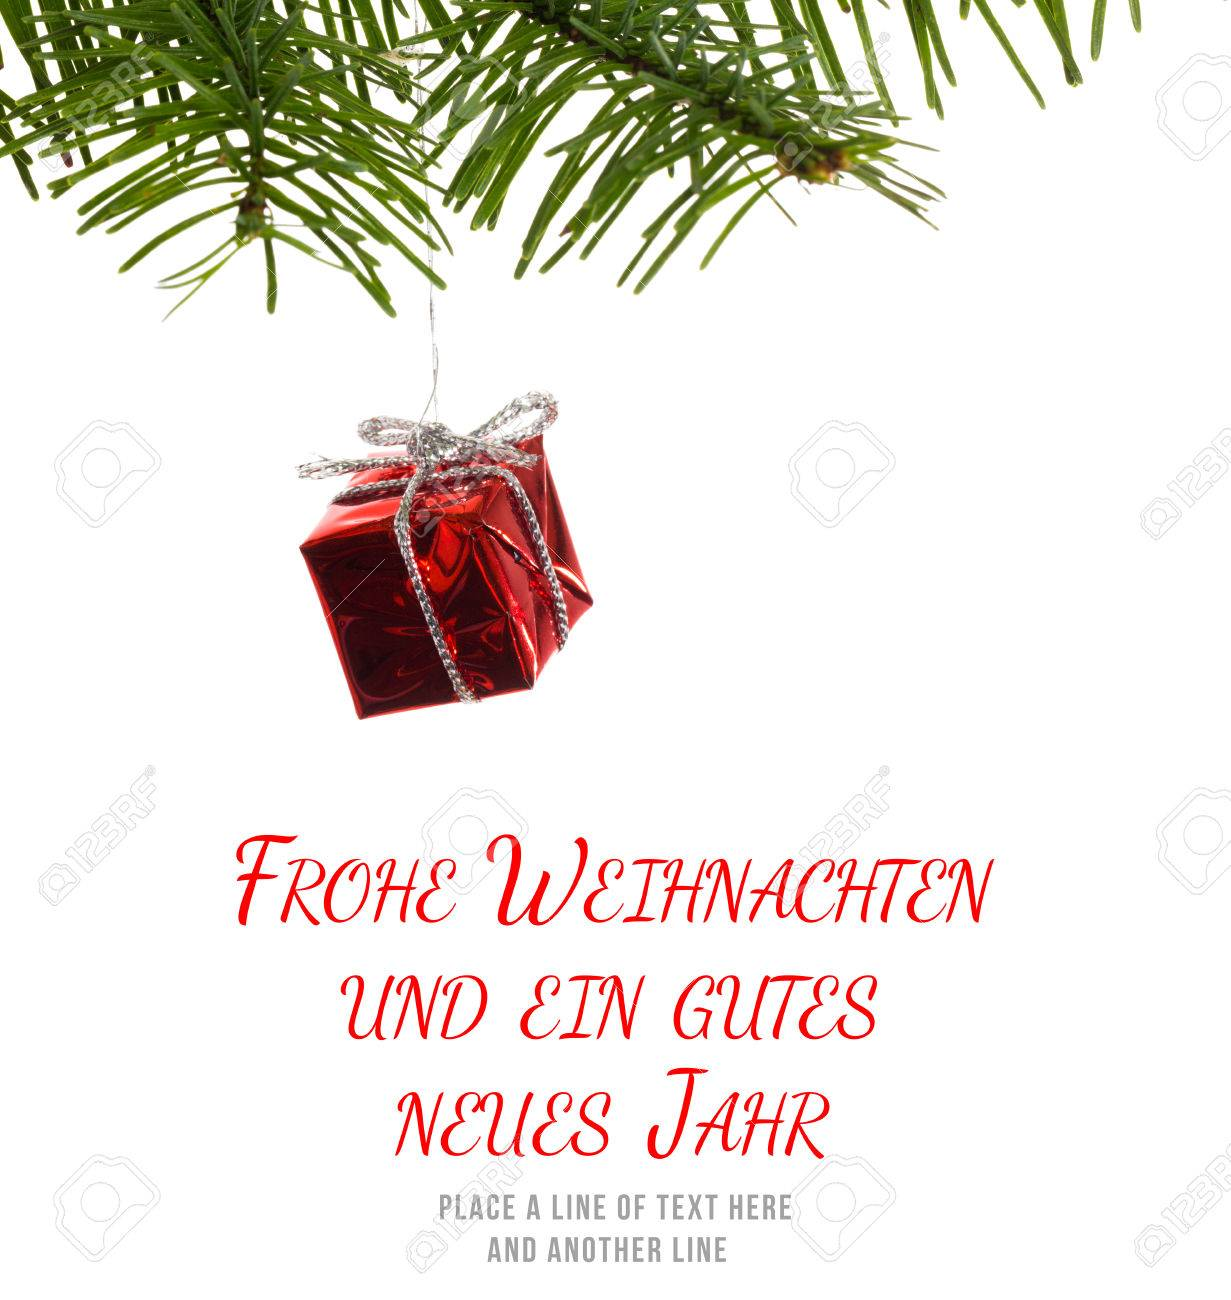 Frohe Weihnachten Message Against Red Christmas Decoration Hanging ...